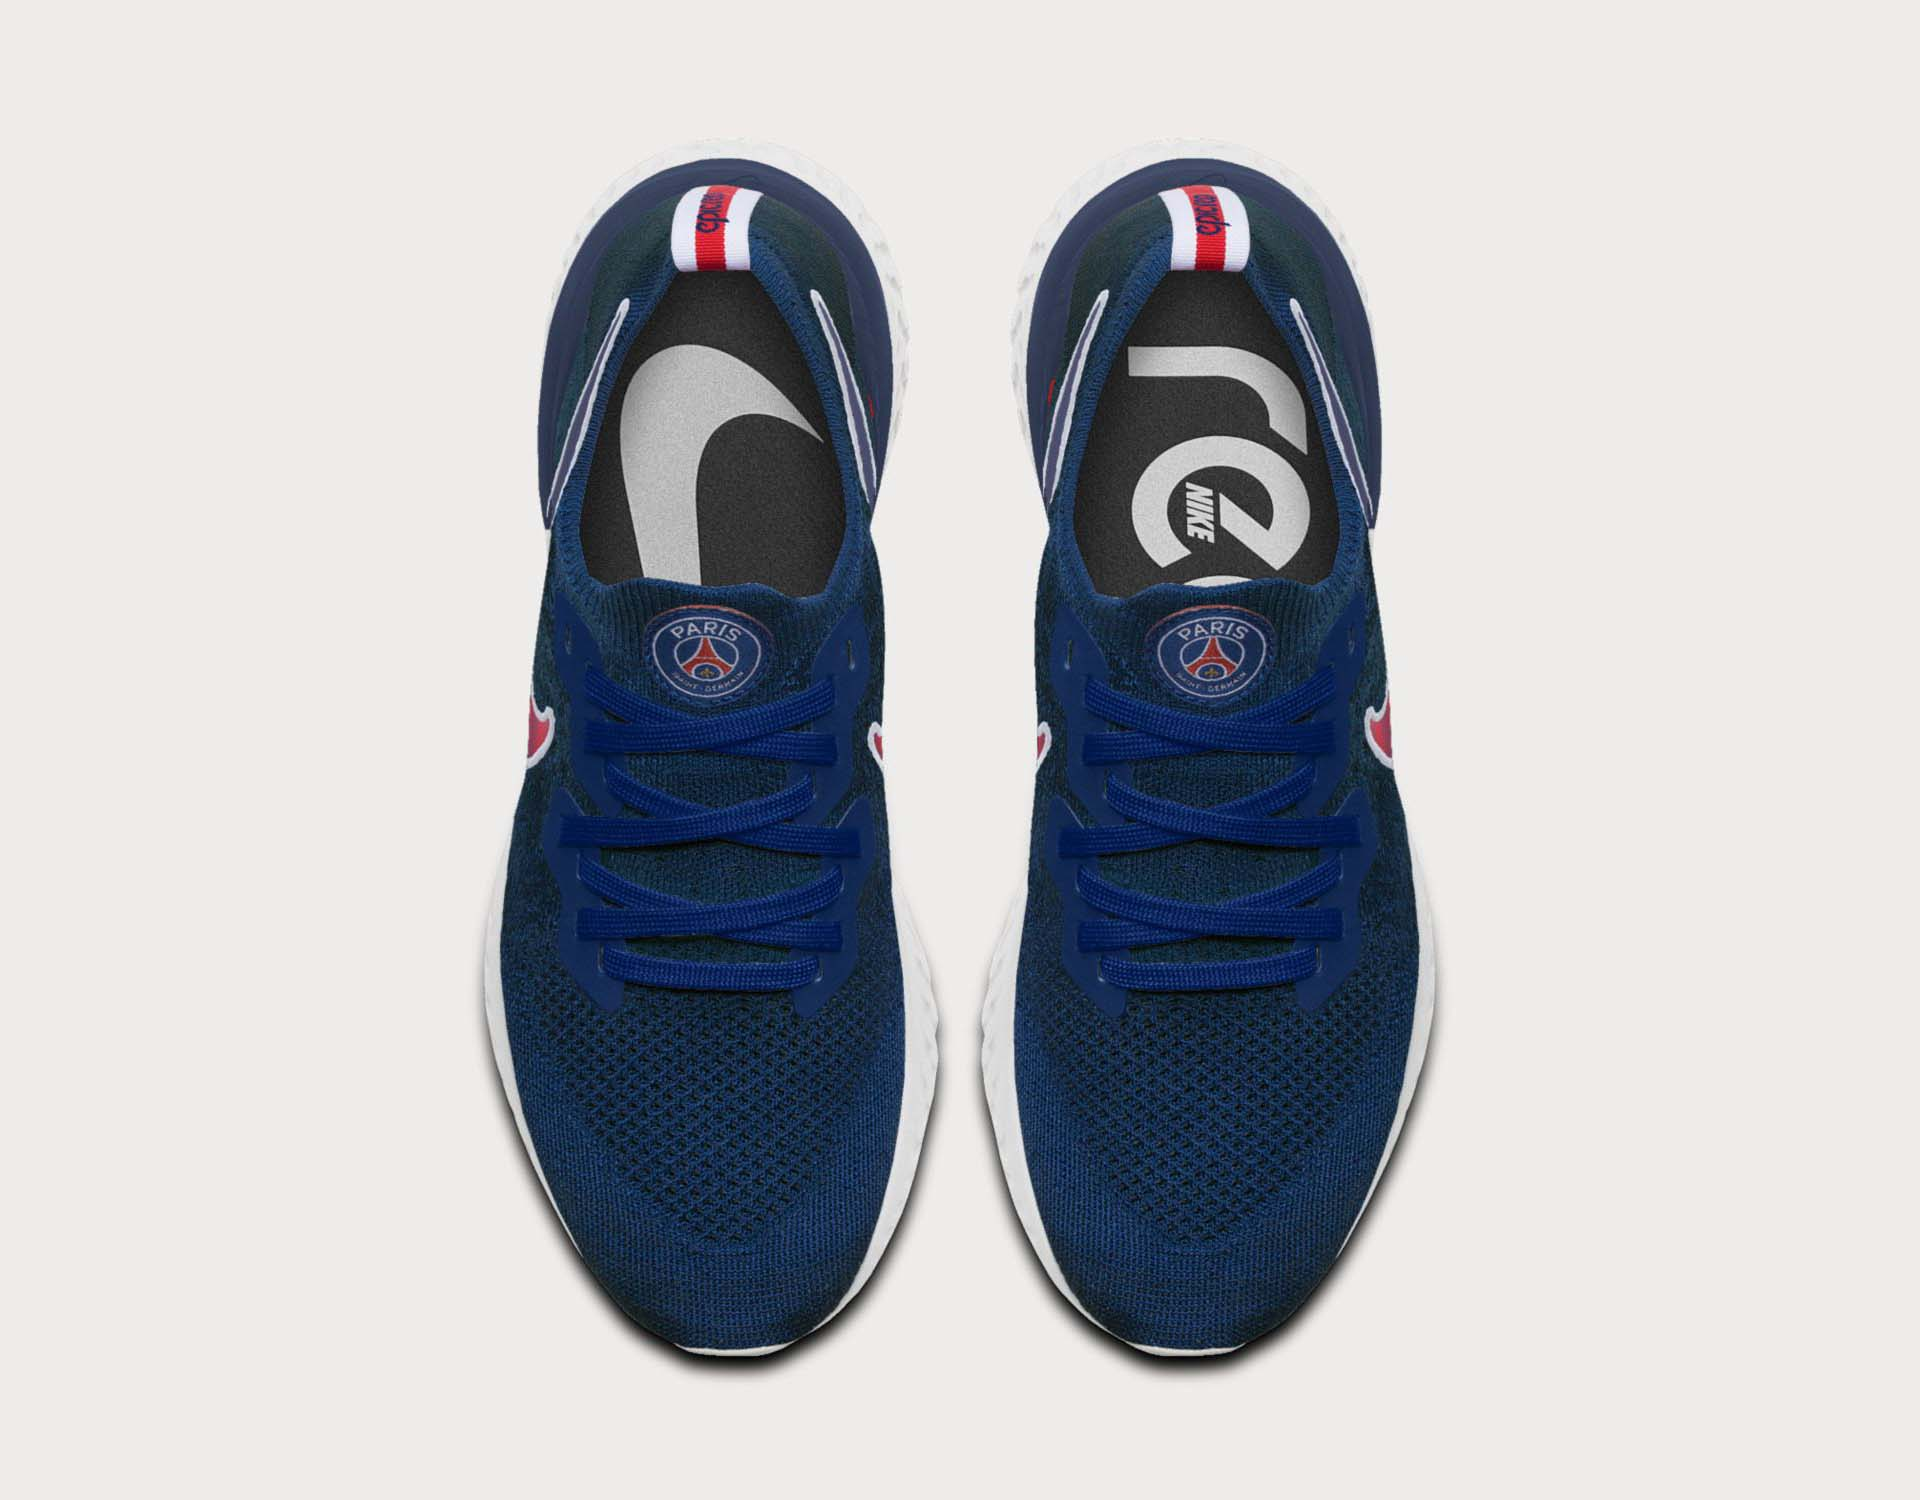 1208593f5e7d Nike Launch 'Traditional Blue' PSG Epic React Flyknit 2 - SoccerBible